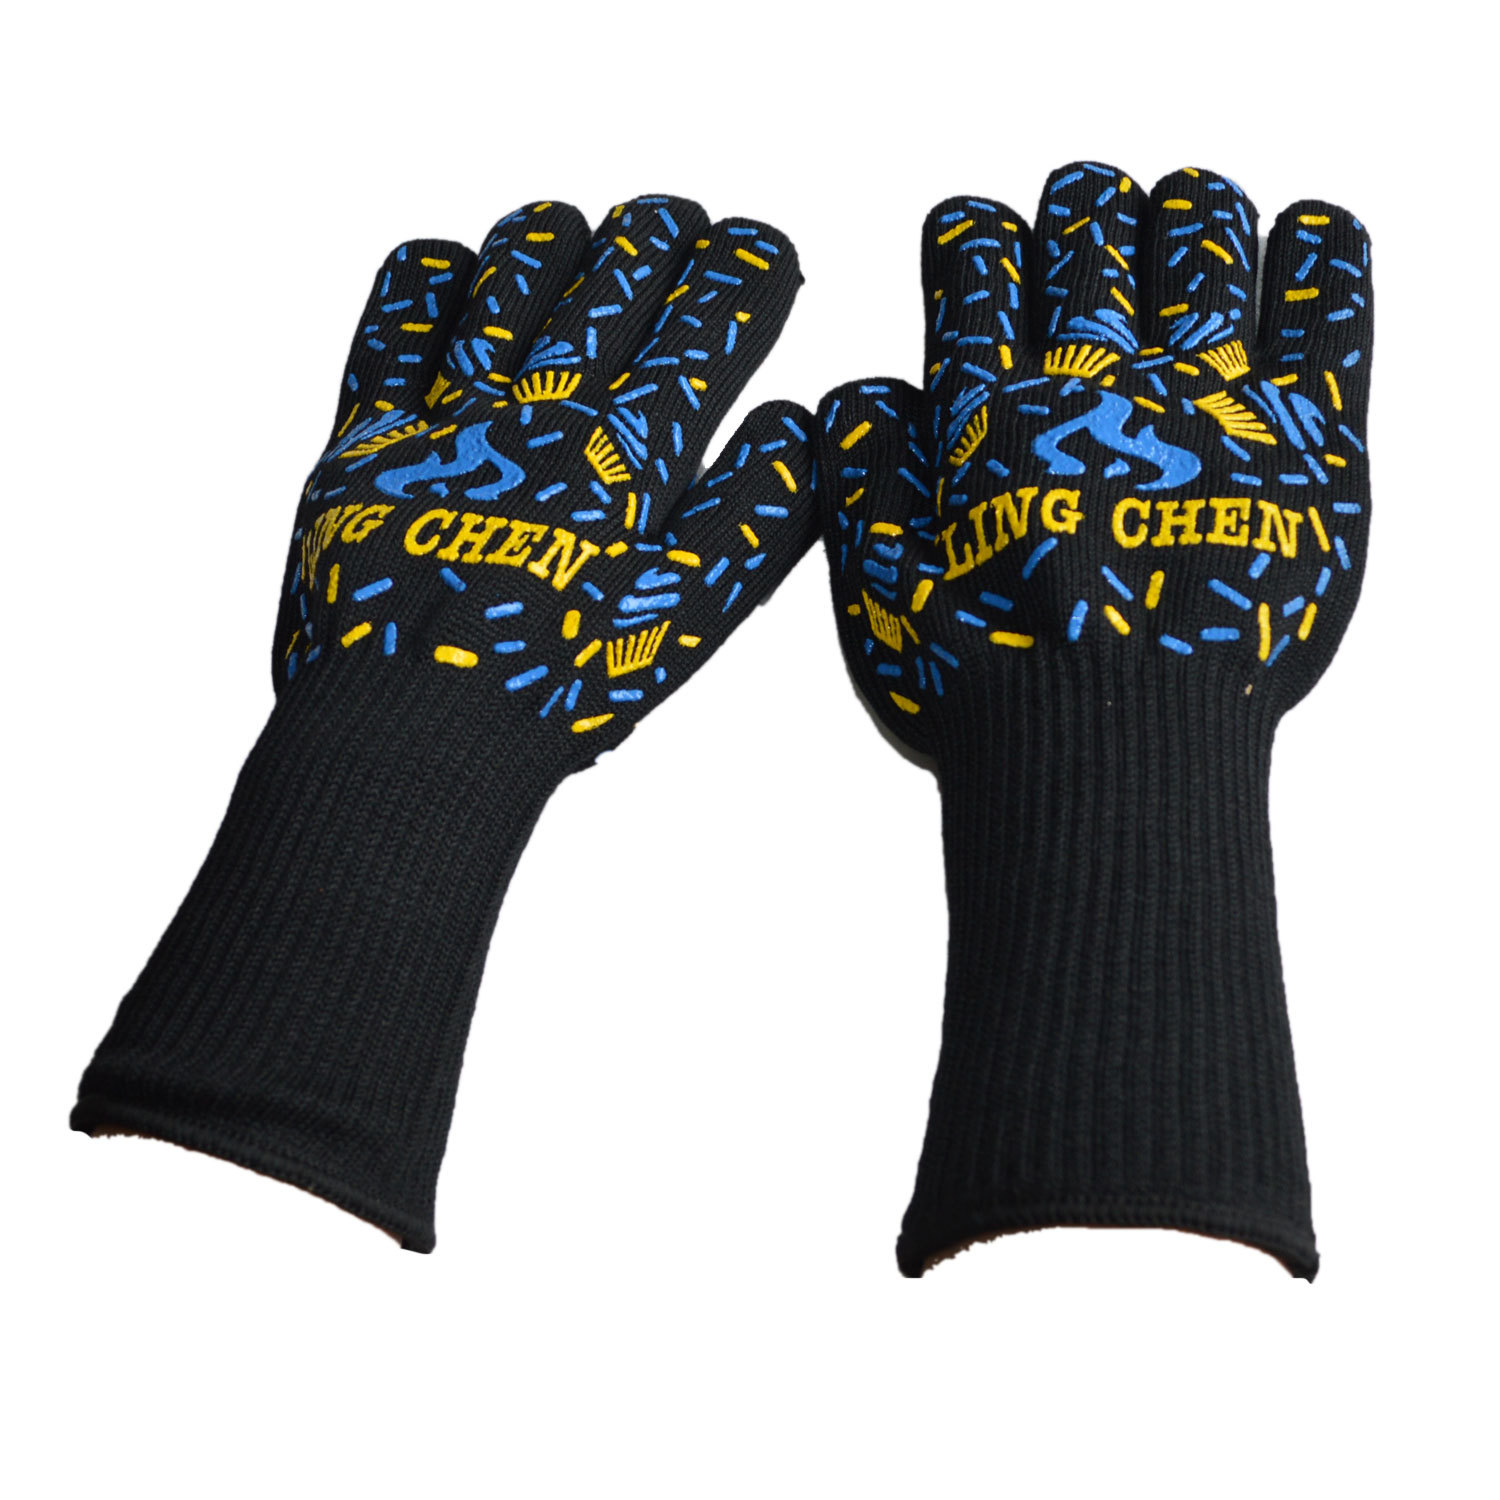 Honana CF-RG3 1 Pc Oven BBQ Mitts Cut Heat Resistant Gloves Non-slip Grilling Cooking Gloves